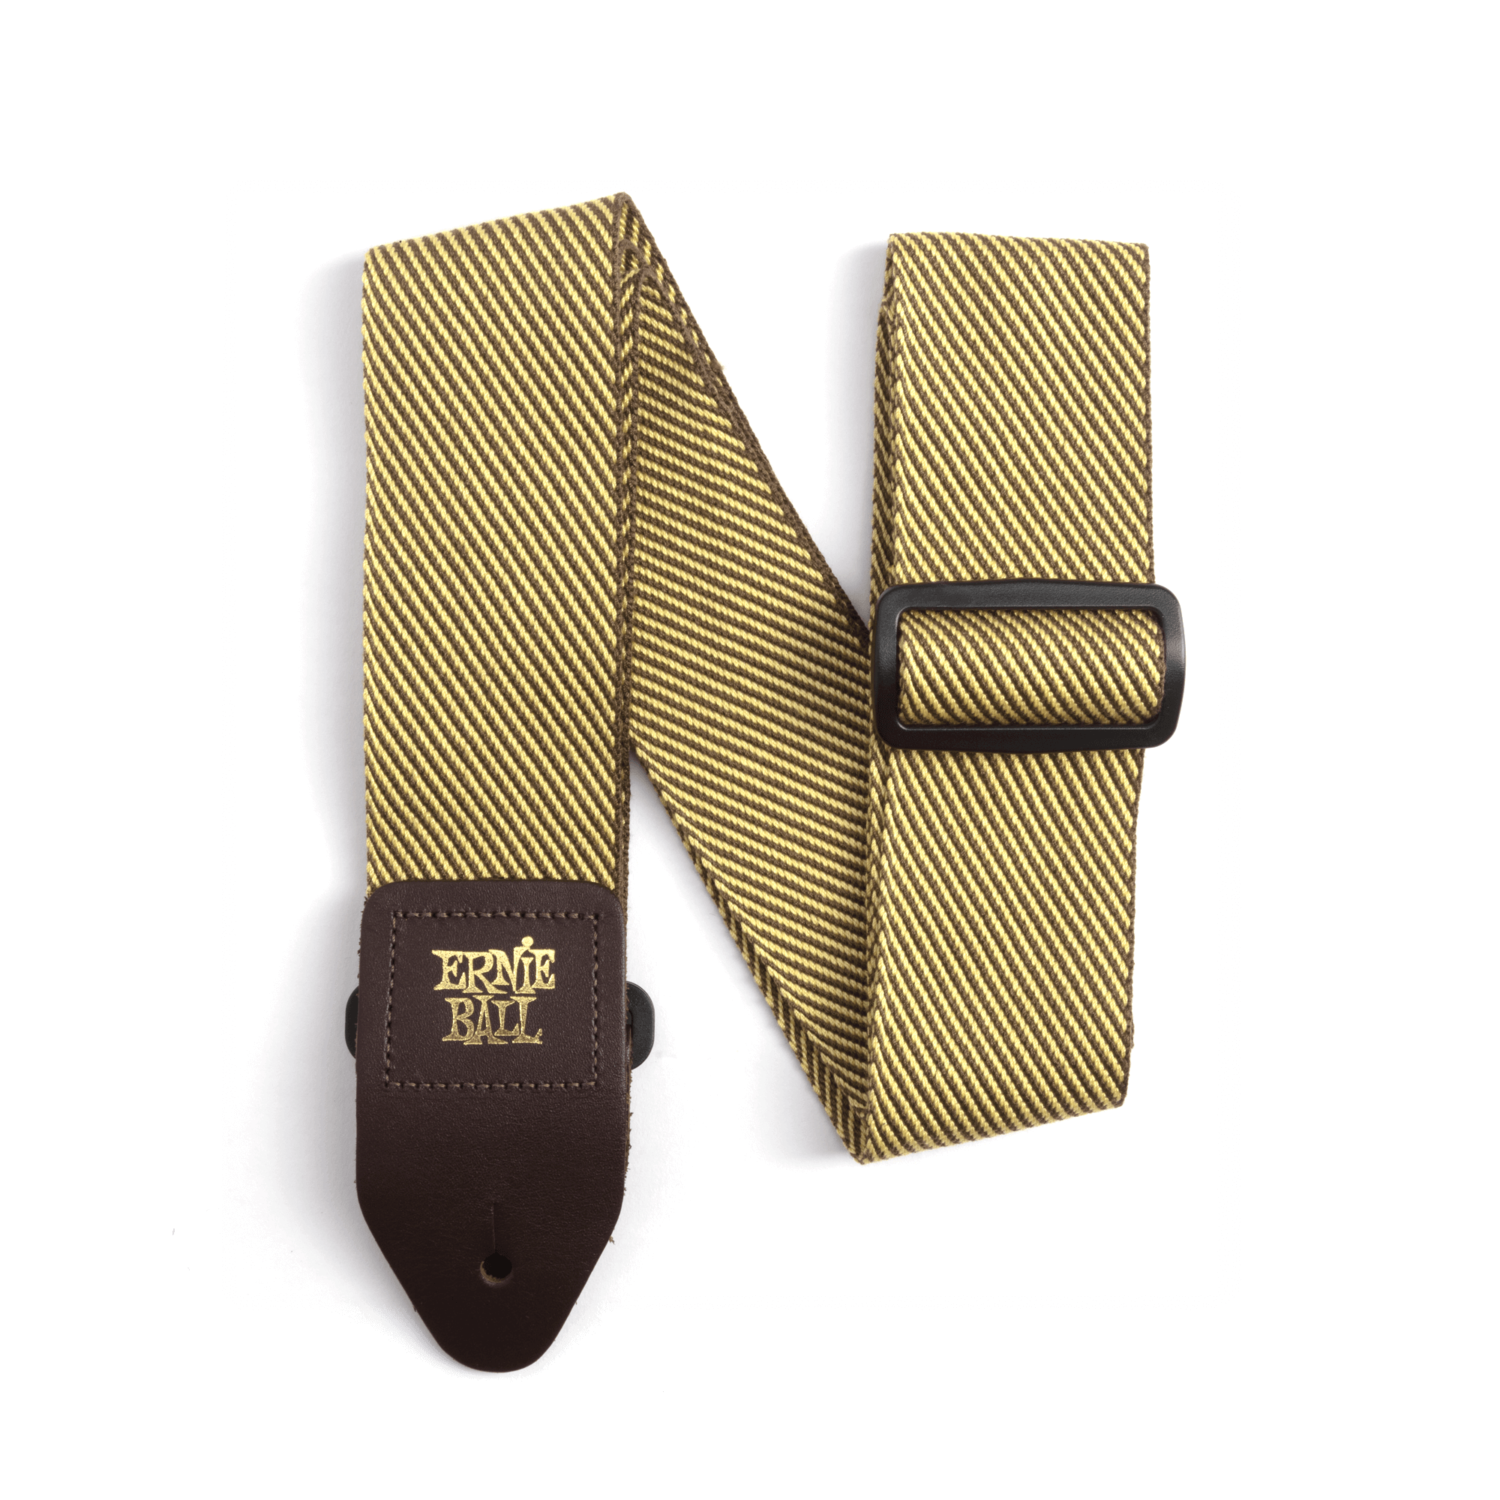 Ernie Ball Tweed Guitar Strap